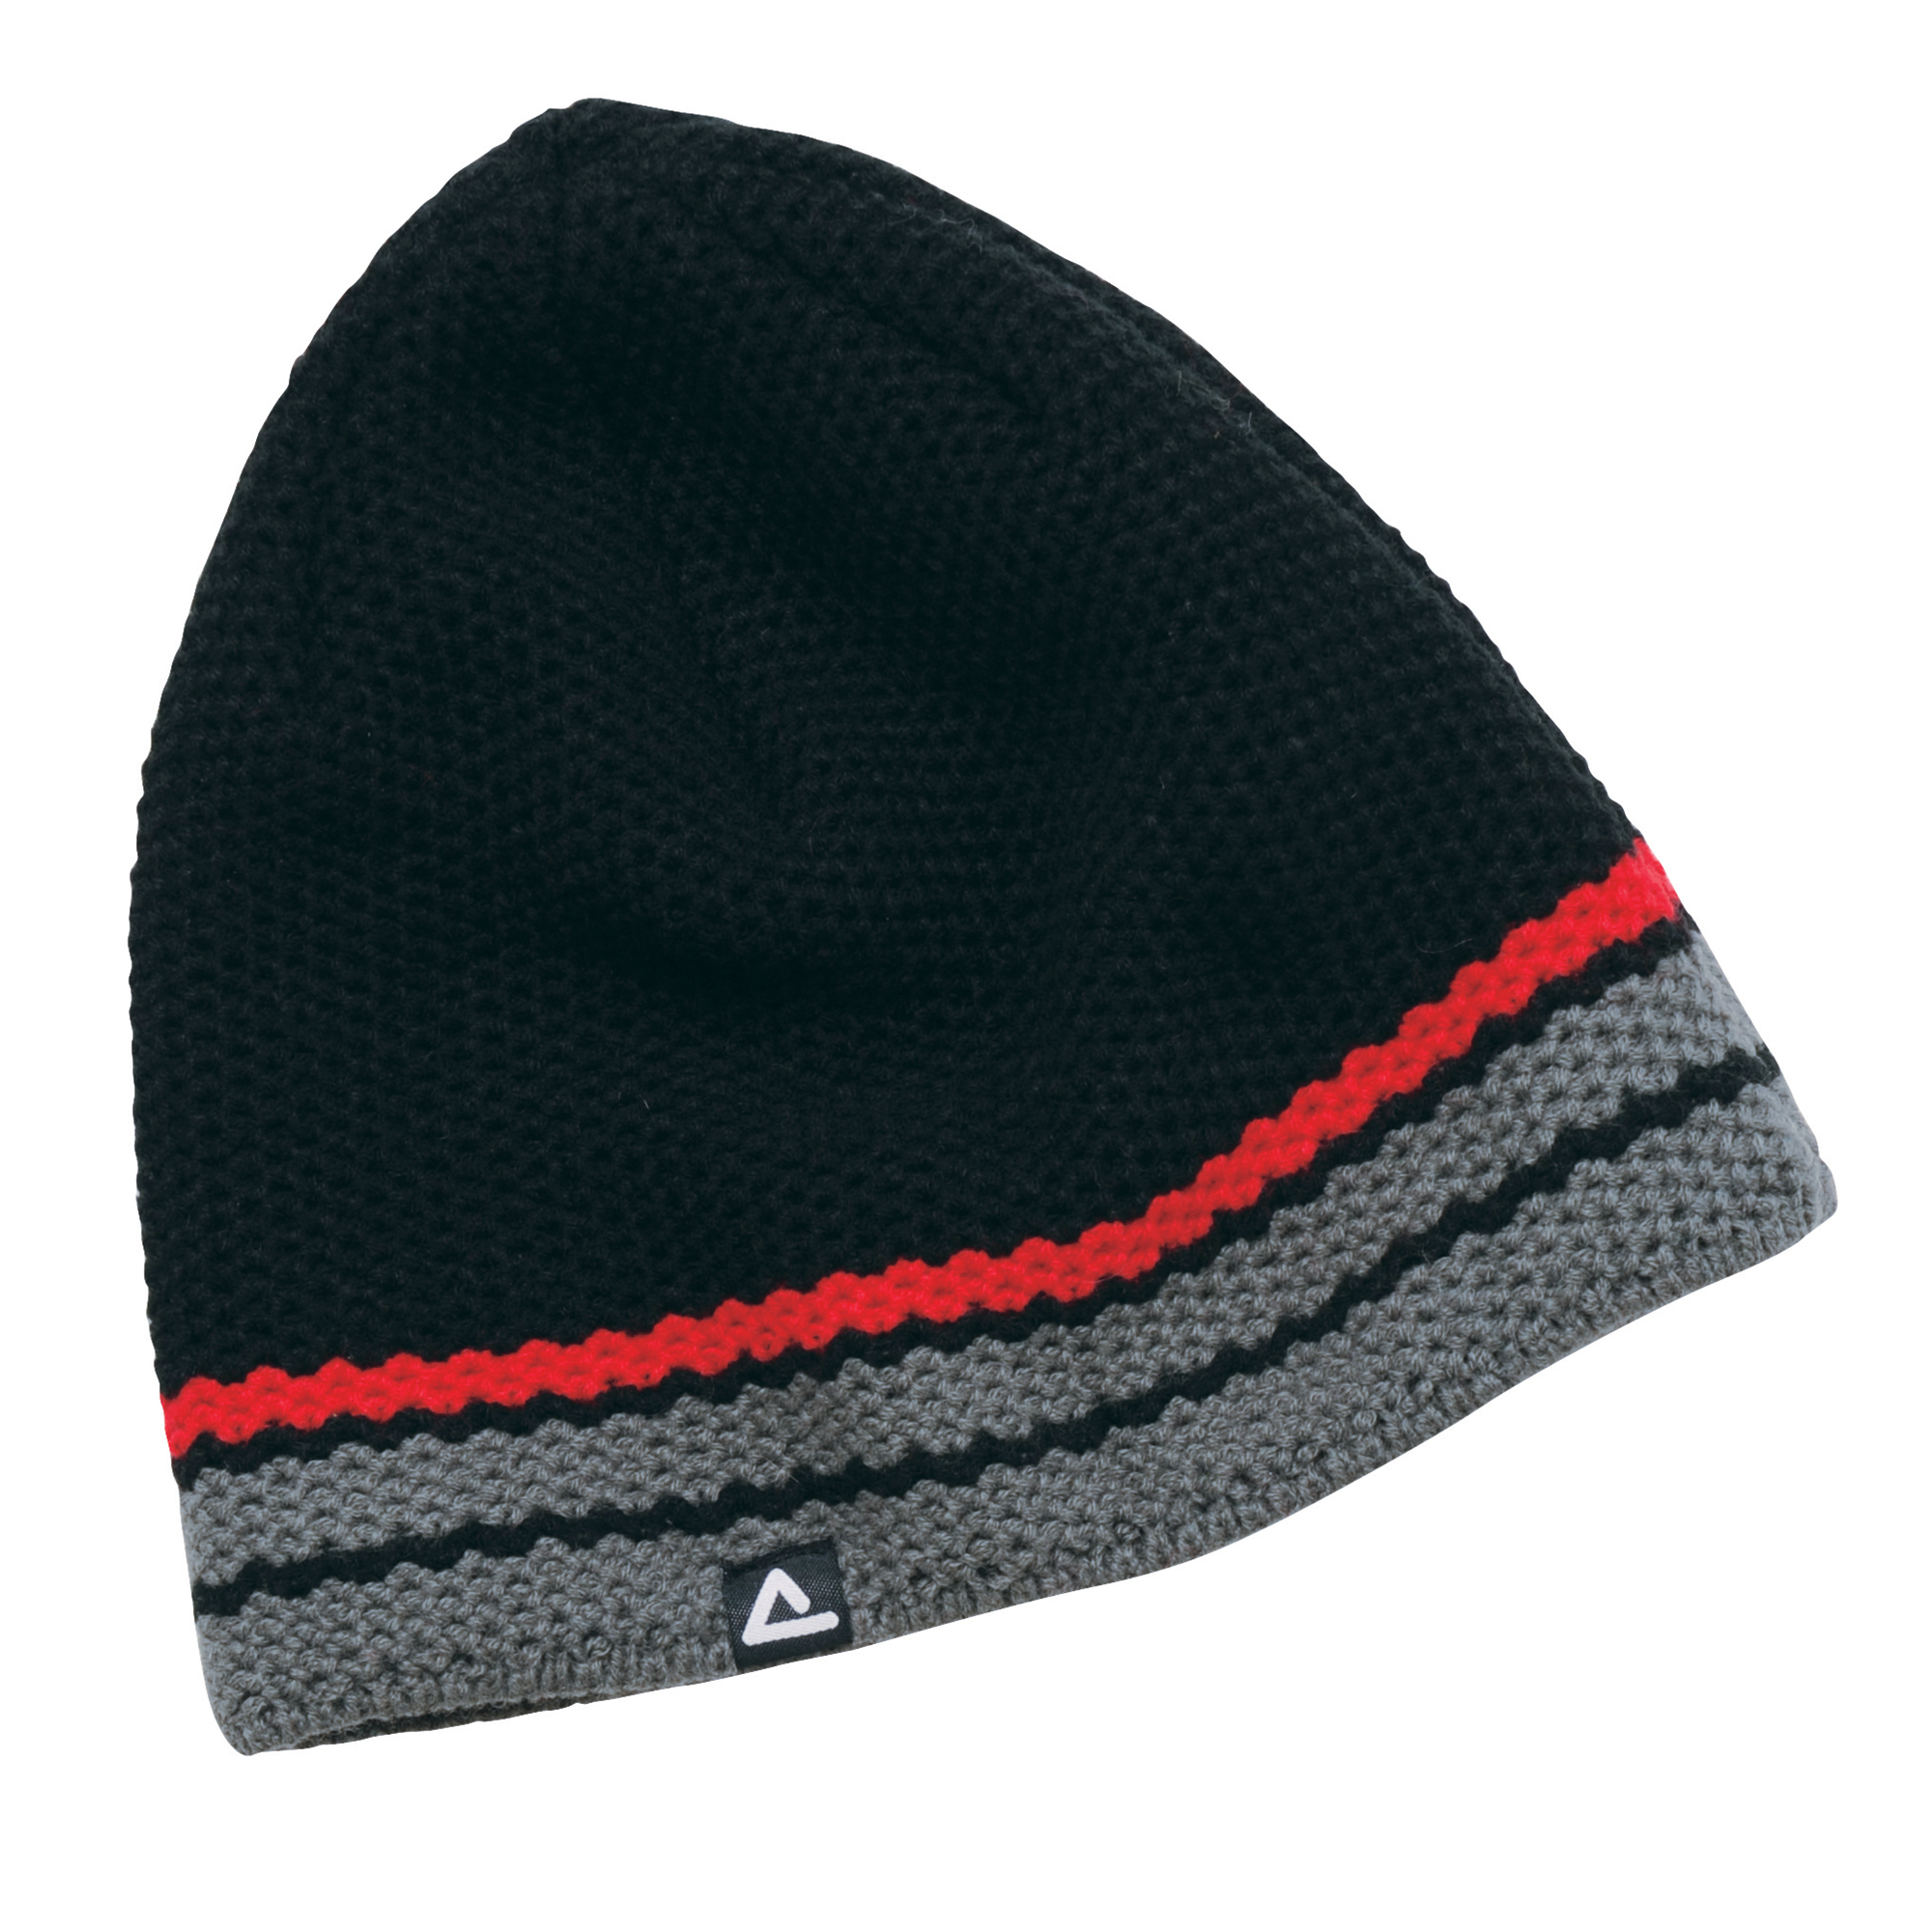 Dare2b Like Minded Men's Beanie